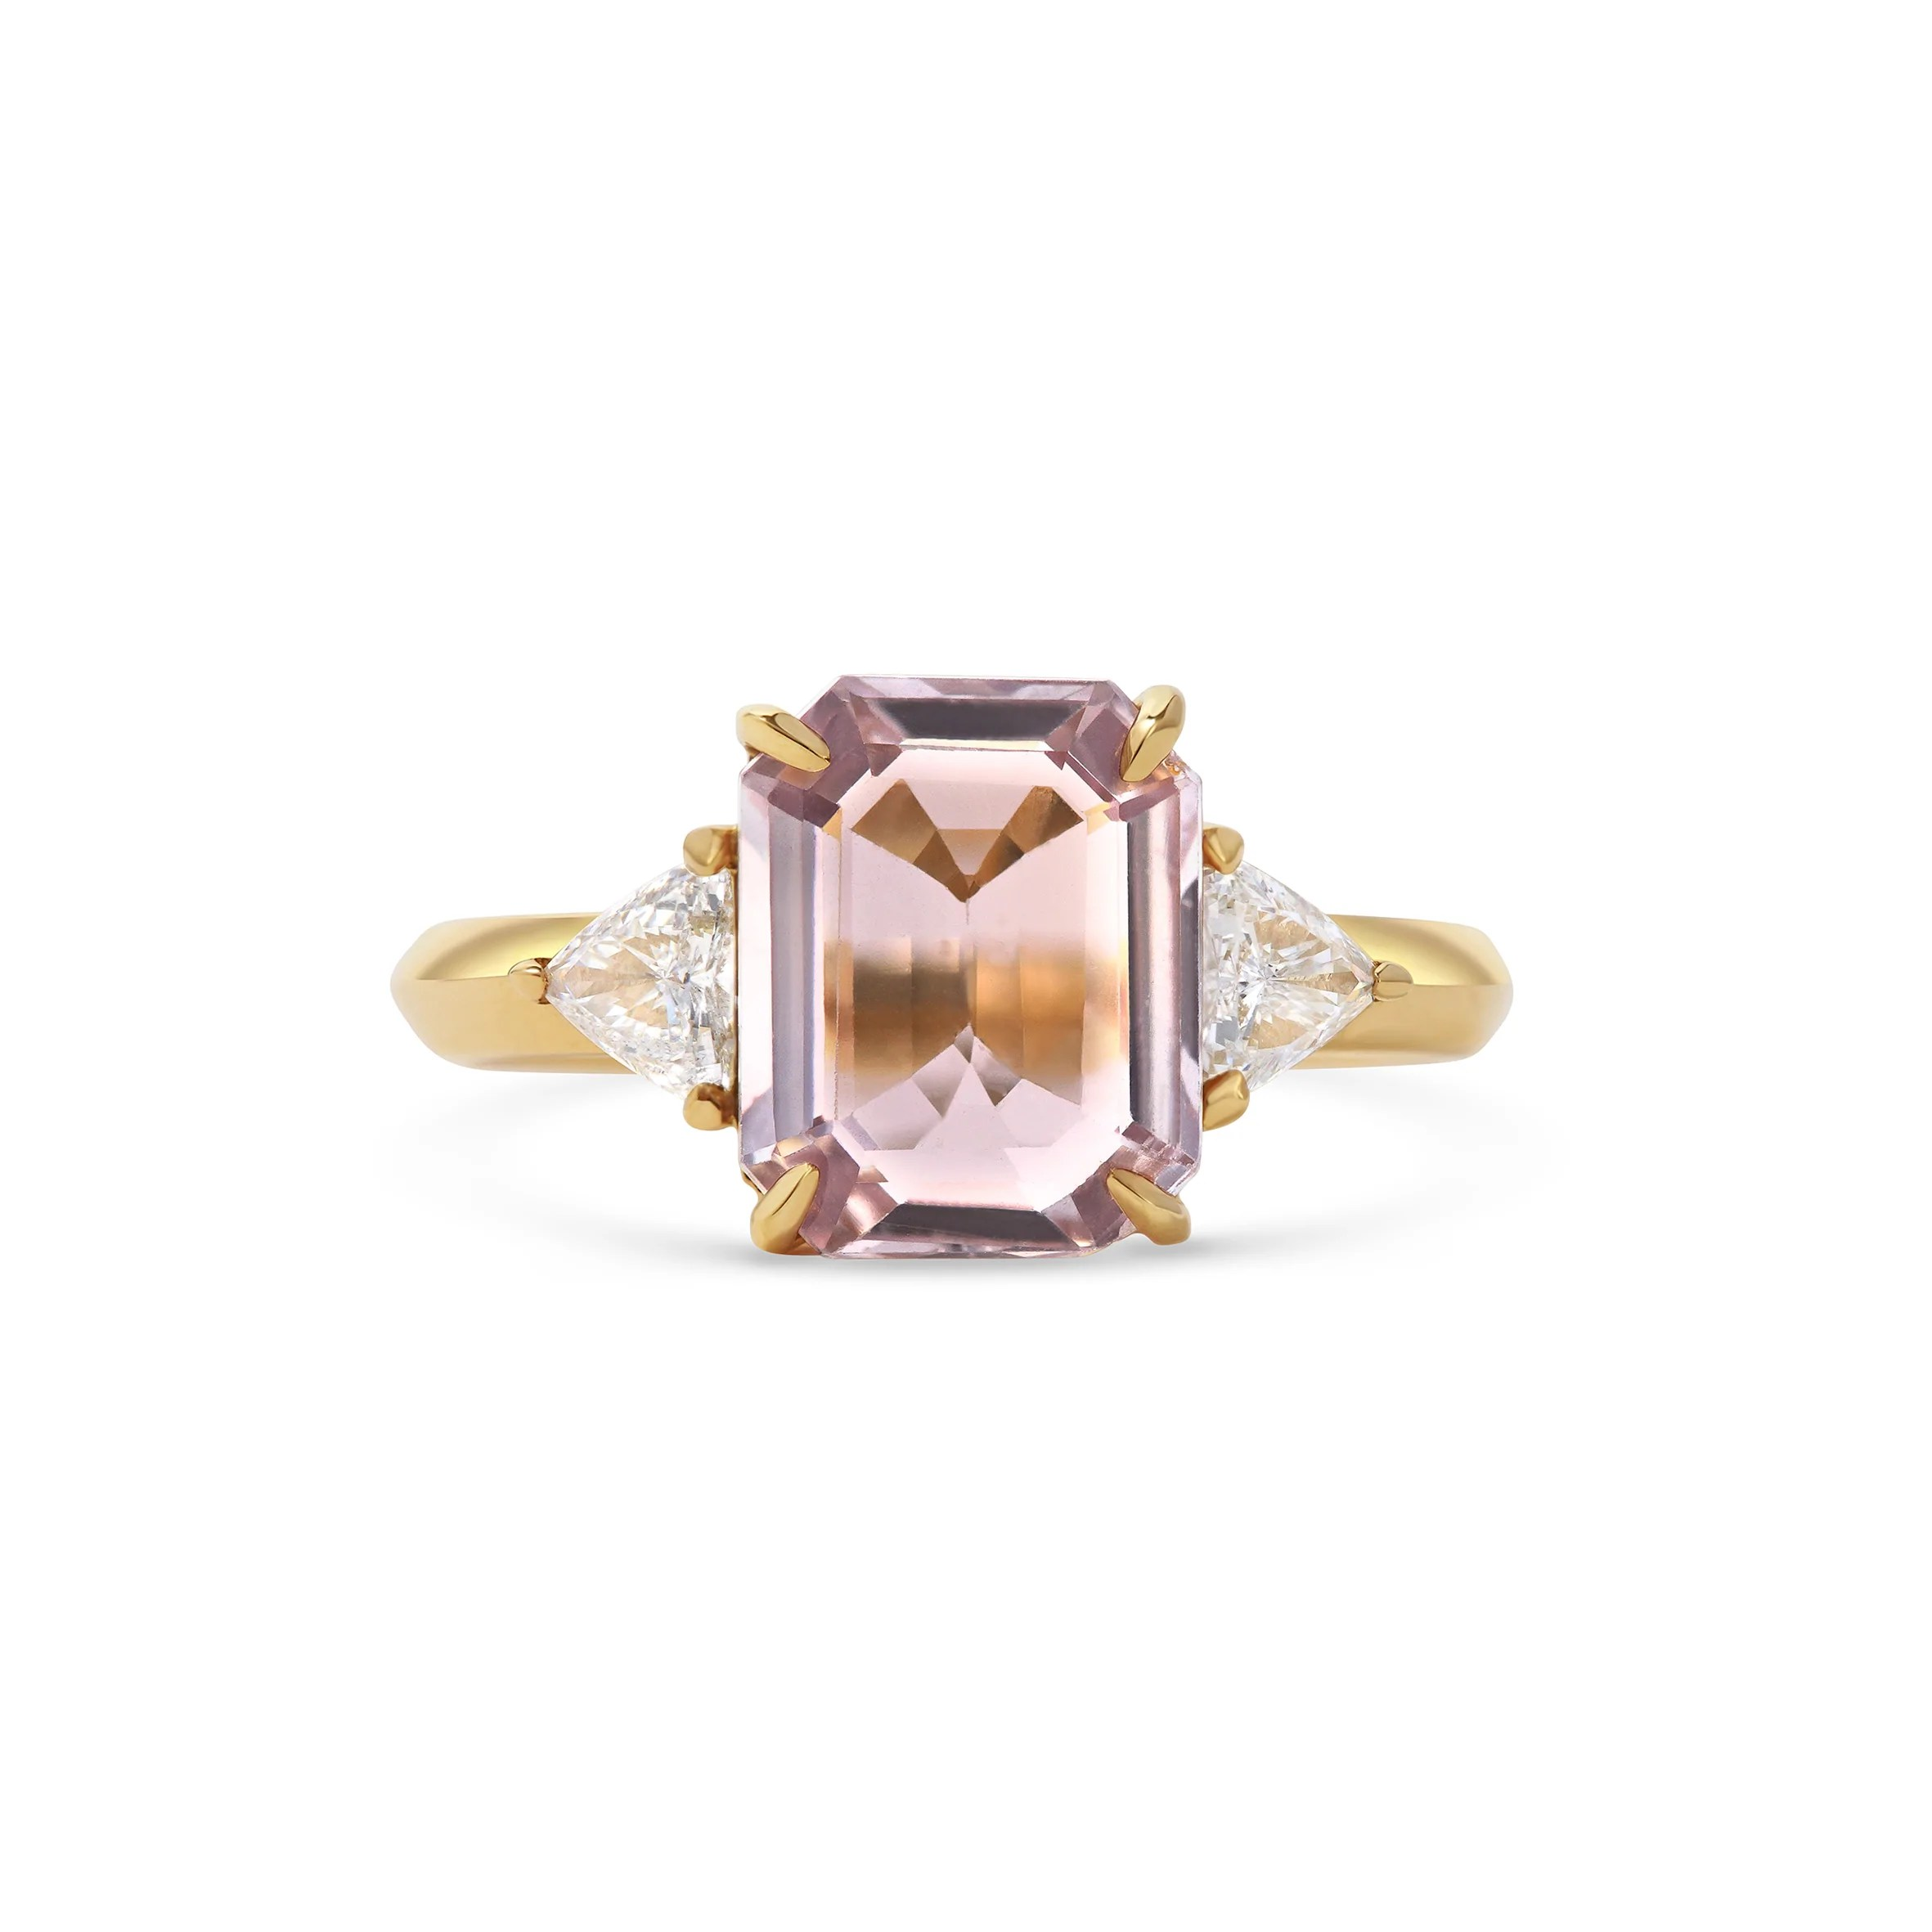 Bespoke Engagement Rings London     Rachel Boston Pink Sapphire Engagement Ring